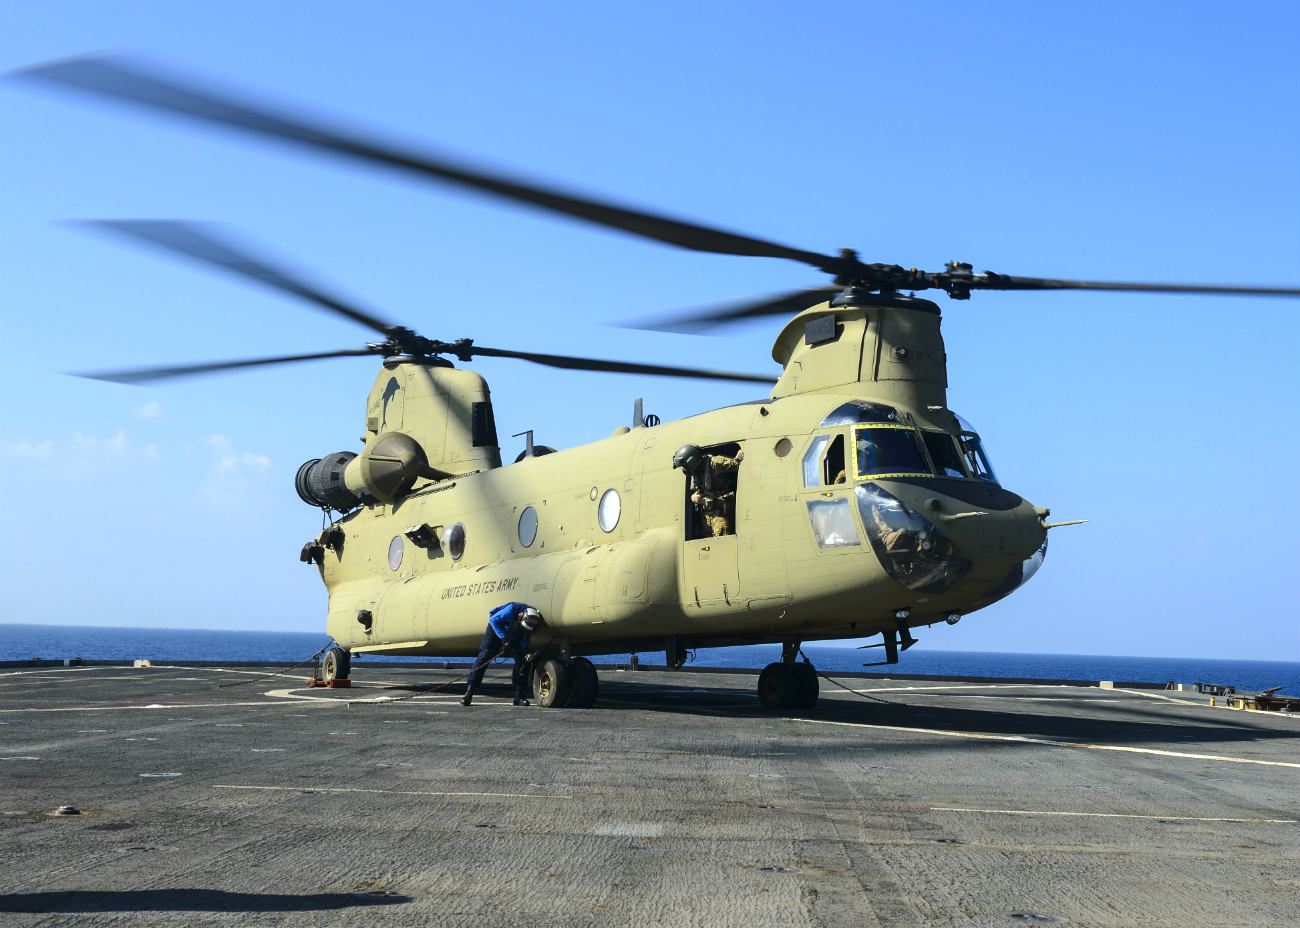 Ch-47 Chinook Images Helicopter on Carrier